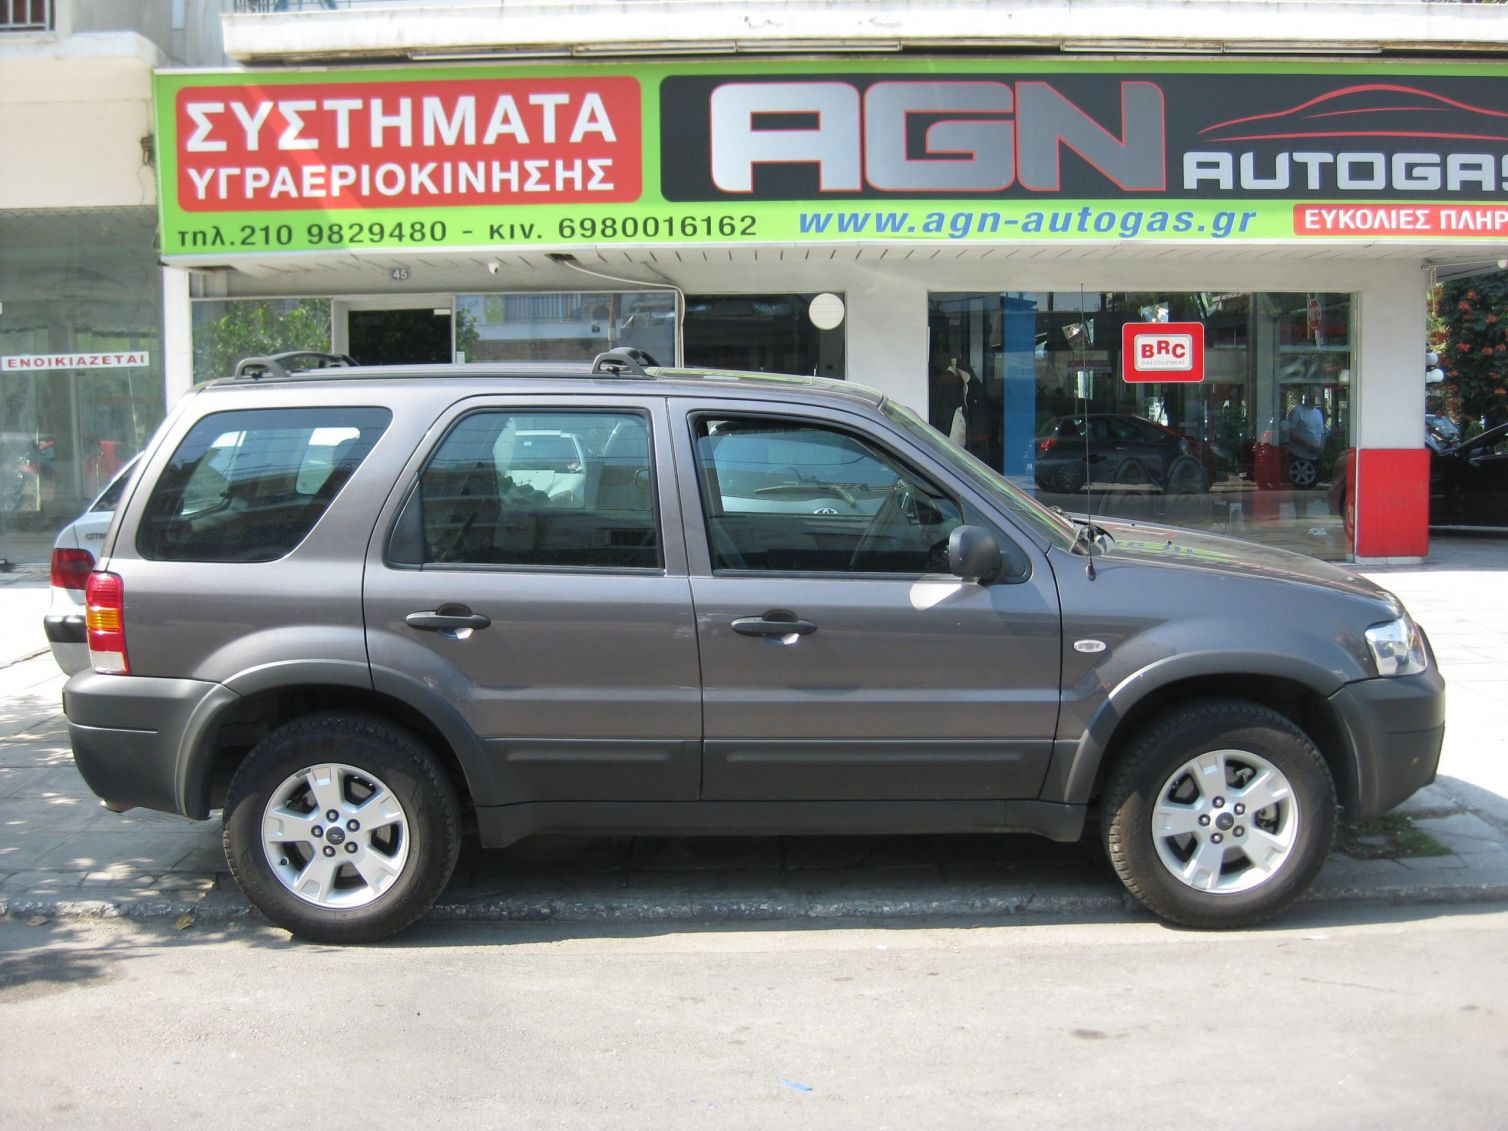 FORD MAVERICK 2300cc '06 ME BRC P&D Ε/63ΛΤ